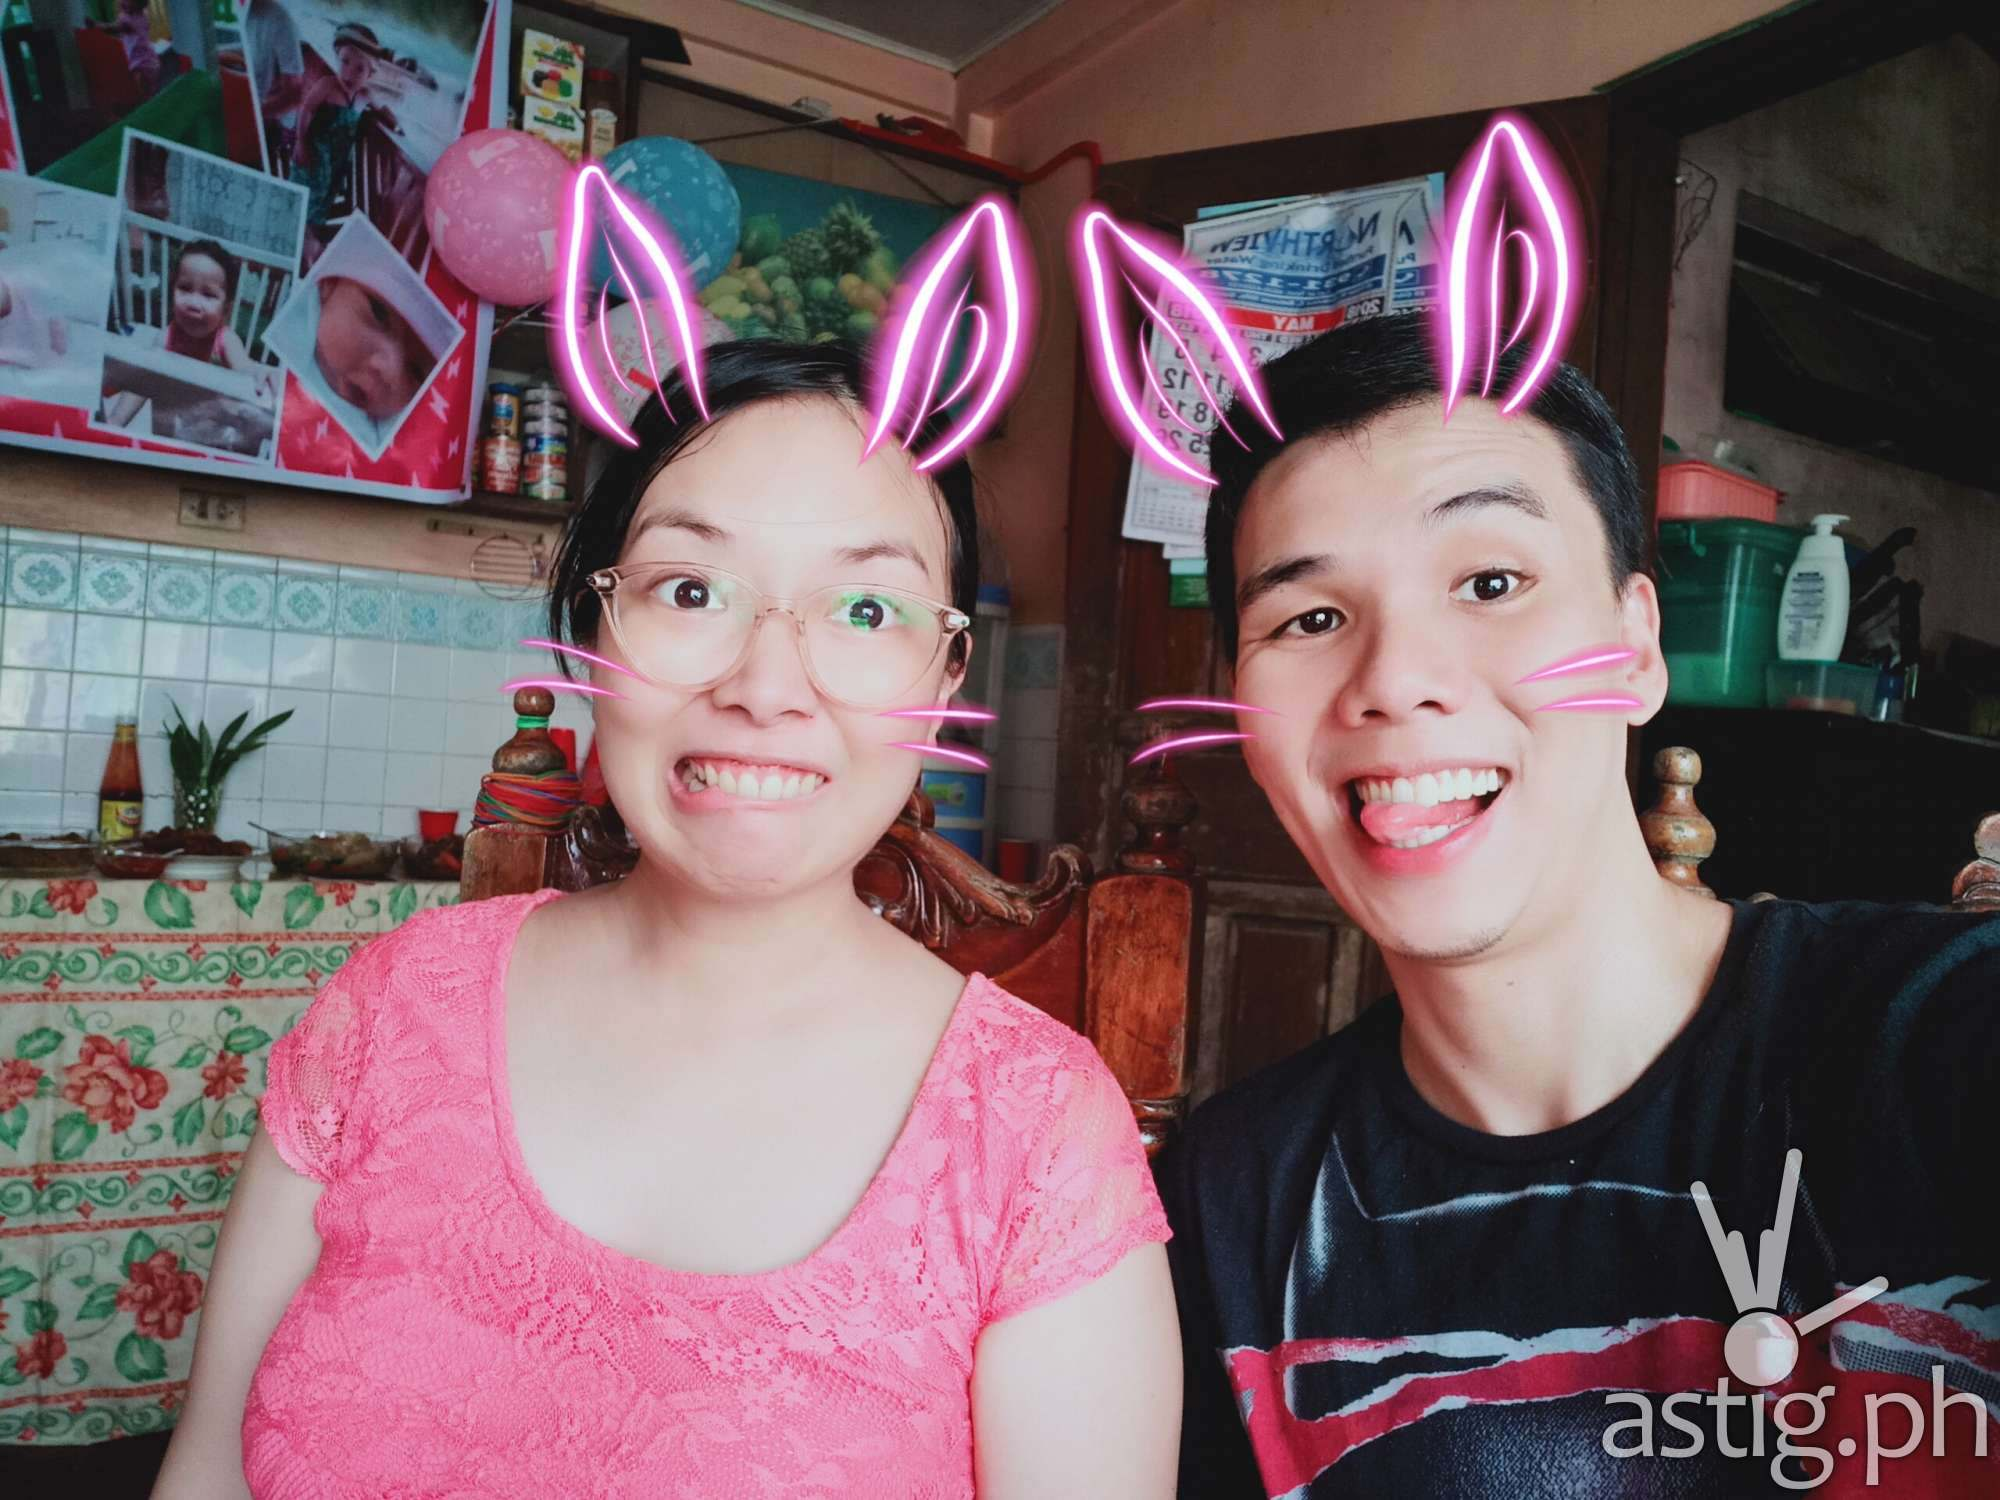 OPPO F7 - selfie camera AR stickers sample photo